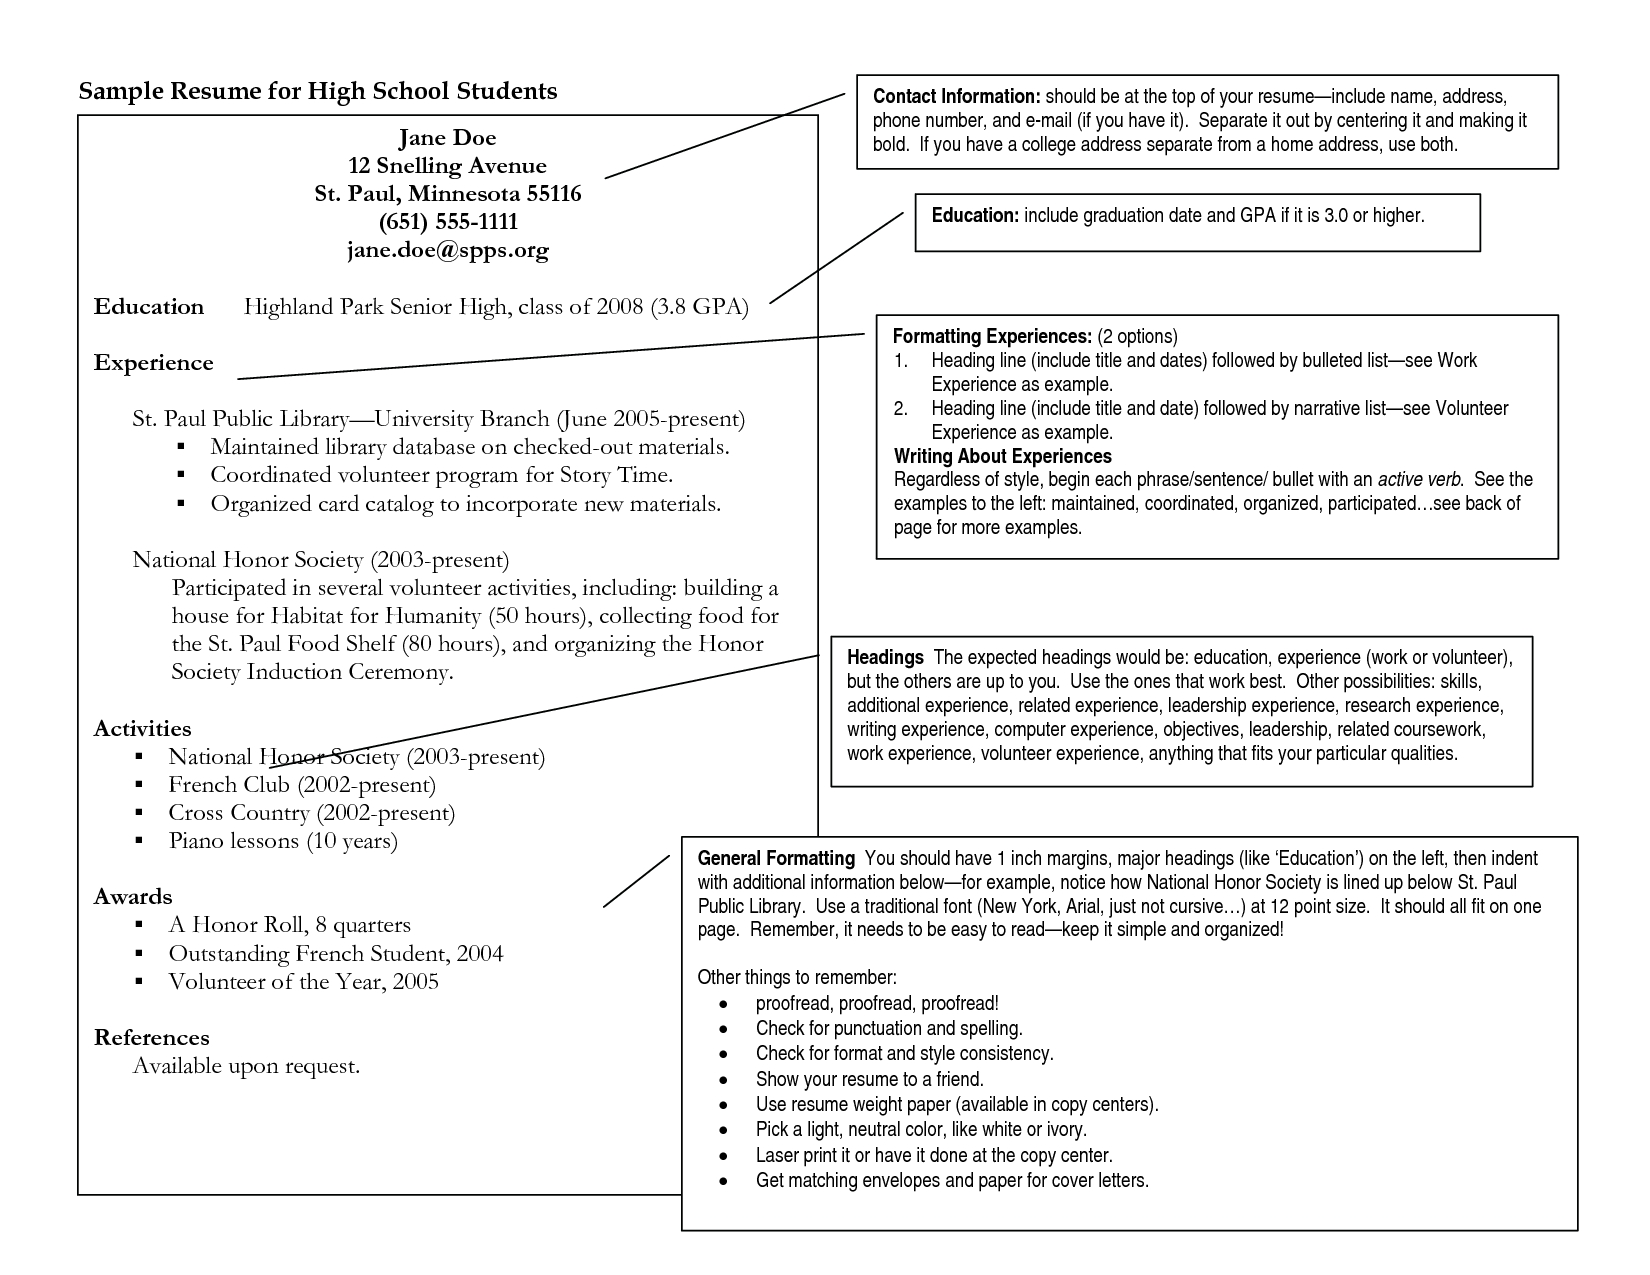 10 Unique Volunteer Ideas For Highschool Students brilliant ideas of college resumes examples for highschool students 1 2020